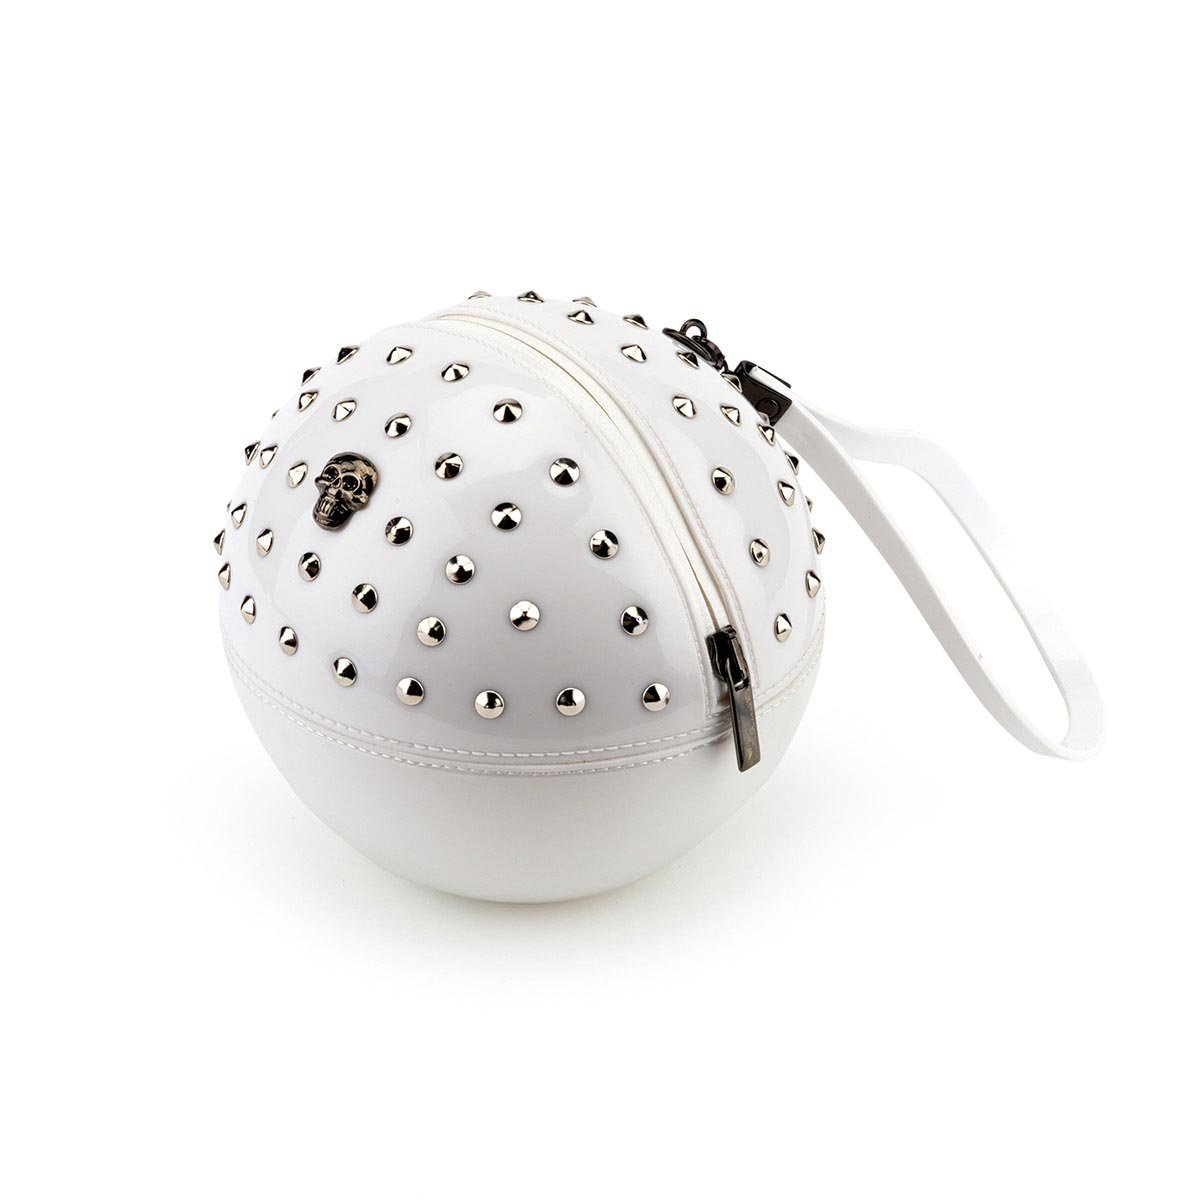 Pvc Sphere Bag with studs